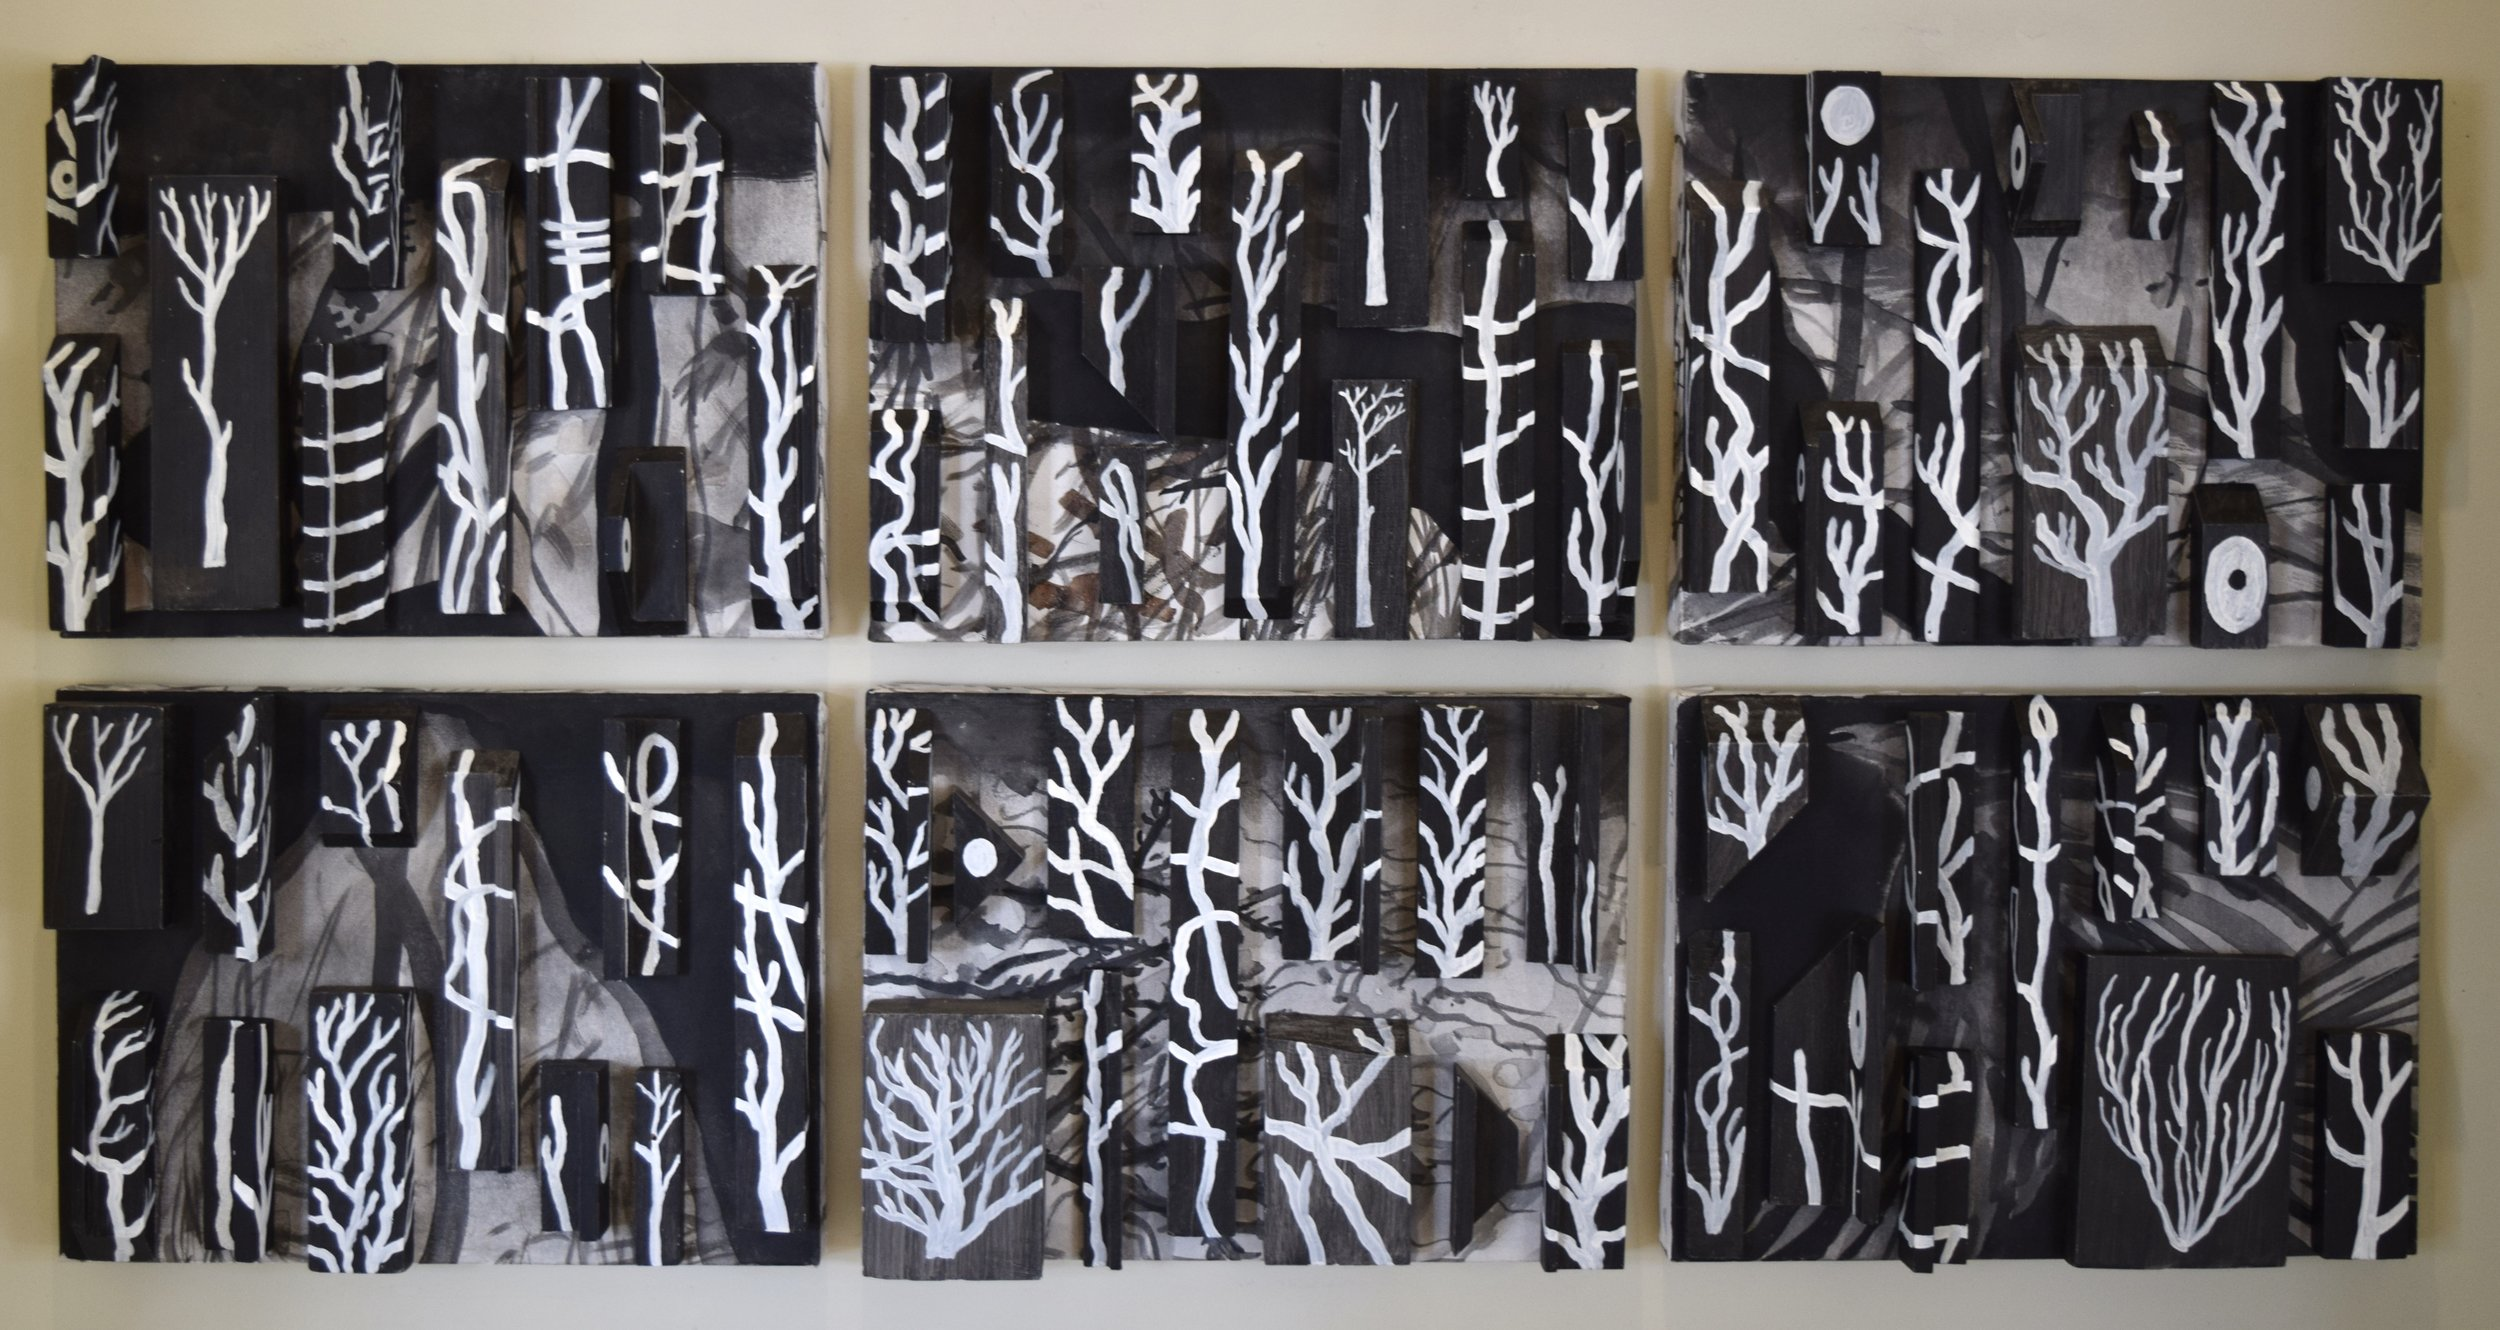 Dead trees , Andrew Powell, acrylic paint, timber on panels, 2015-2018